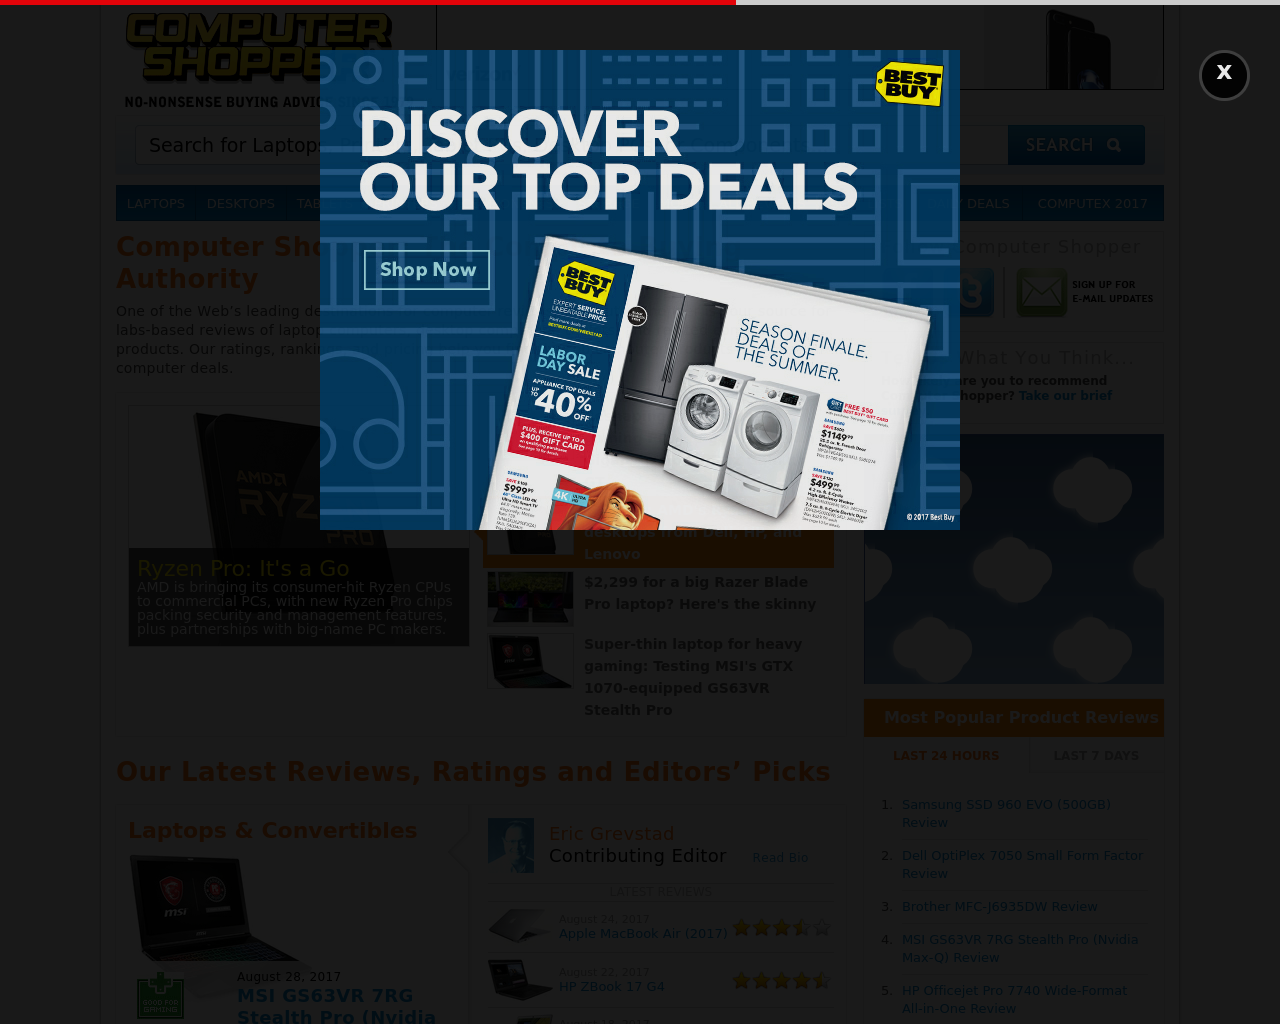 COMPUTER-SHOPPER-Advertising-Reviews-Pricing